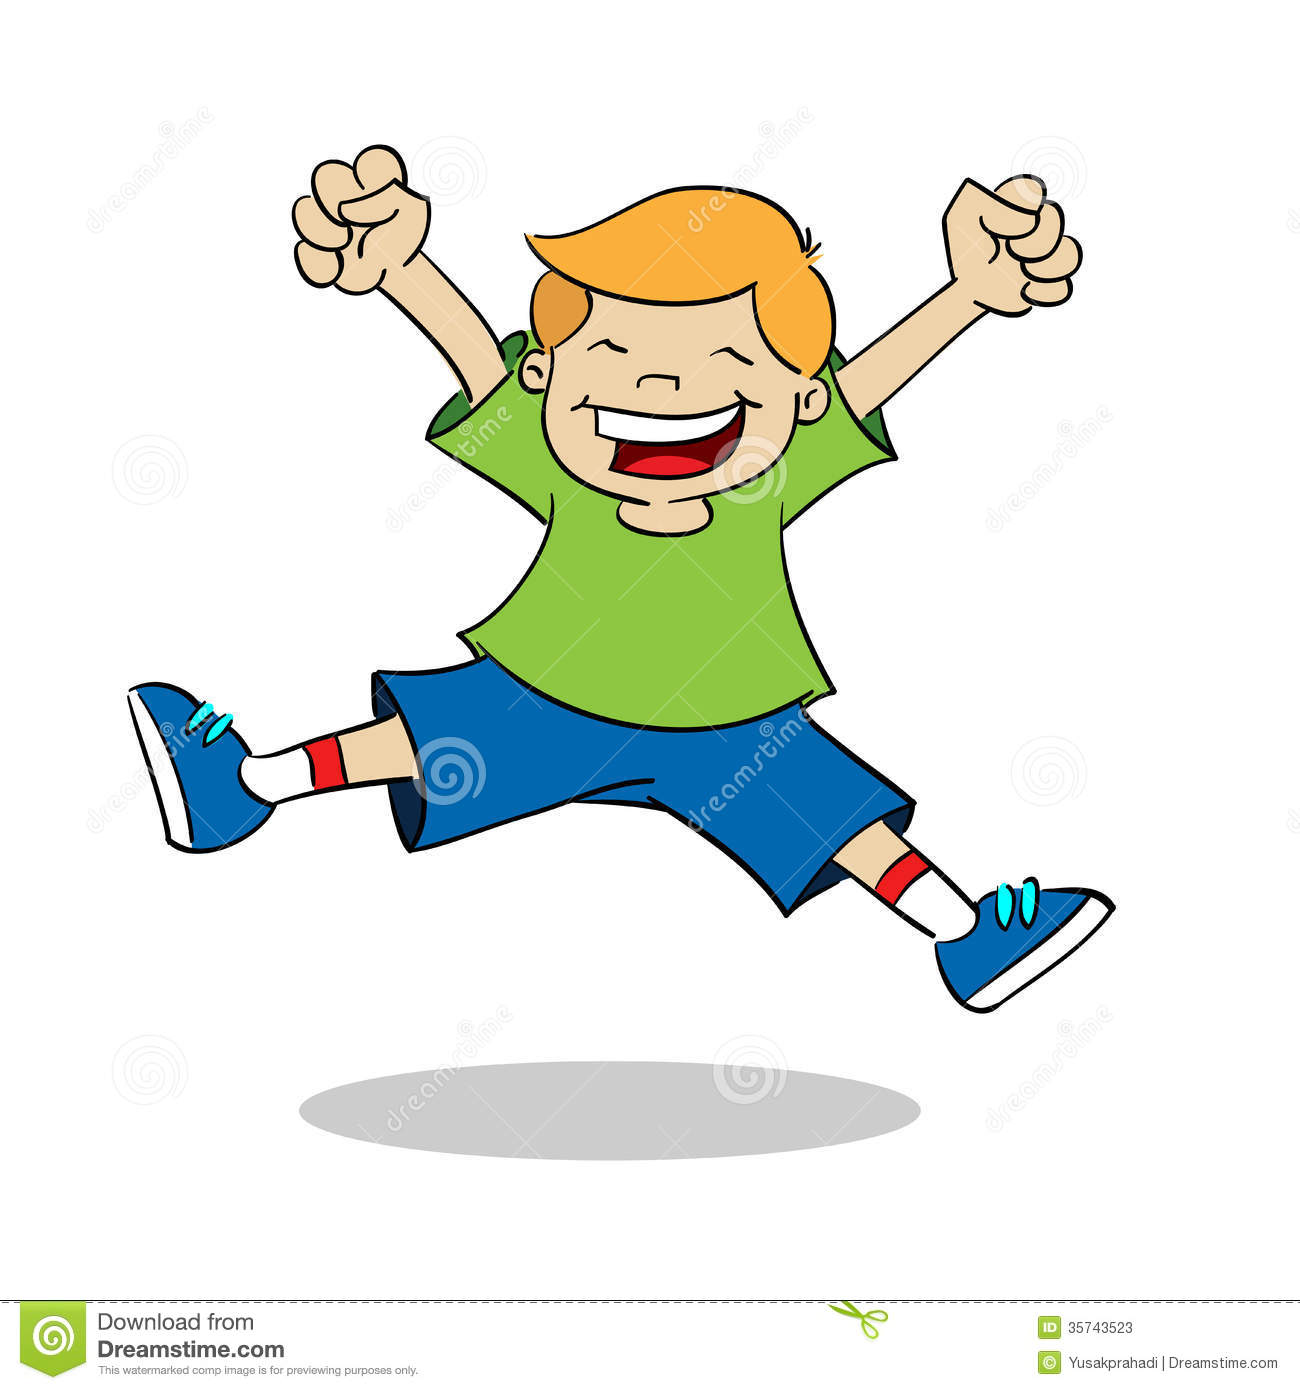 Clipart Jumpingjumpingrope Clipartbungee-Clipart Jumpingjumpingrope Clipartbungeejumping Clipart-0